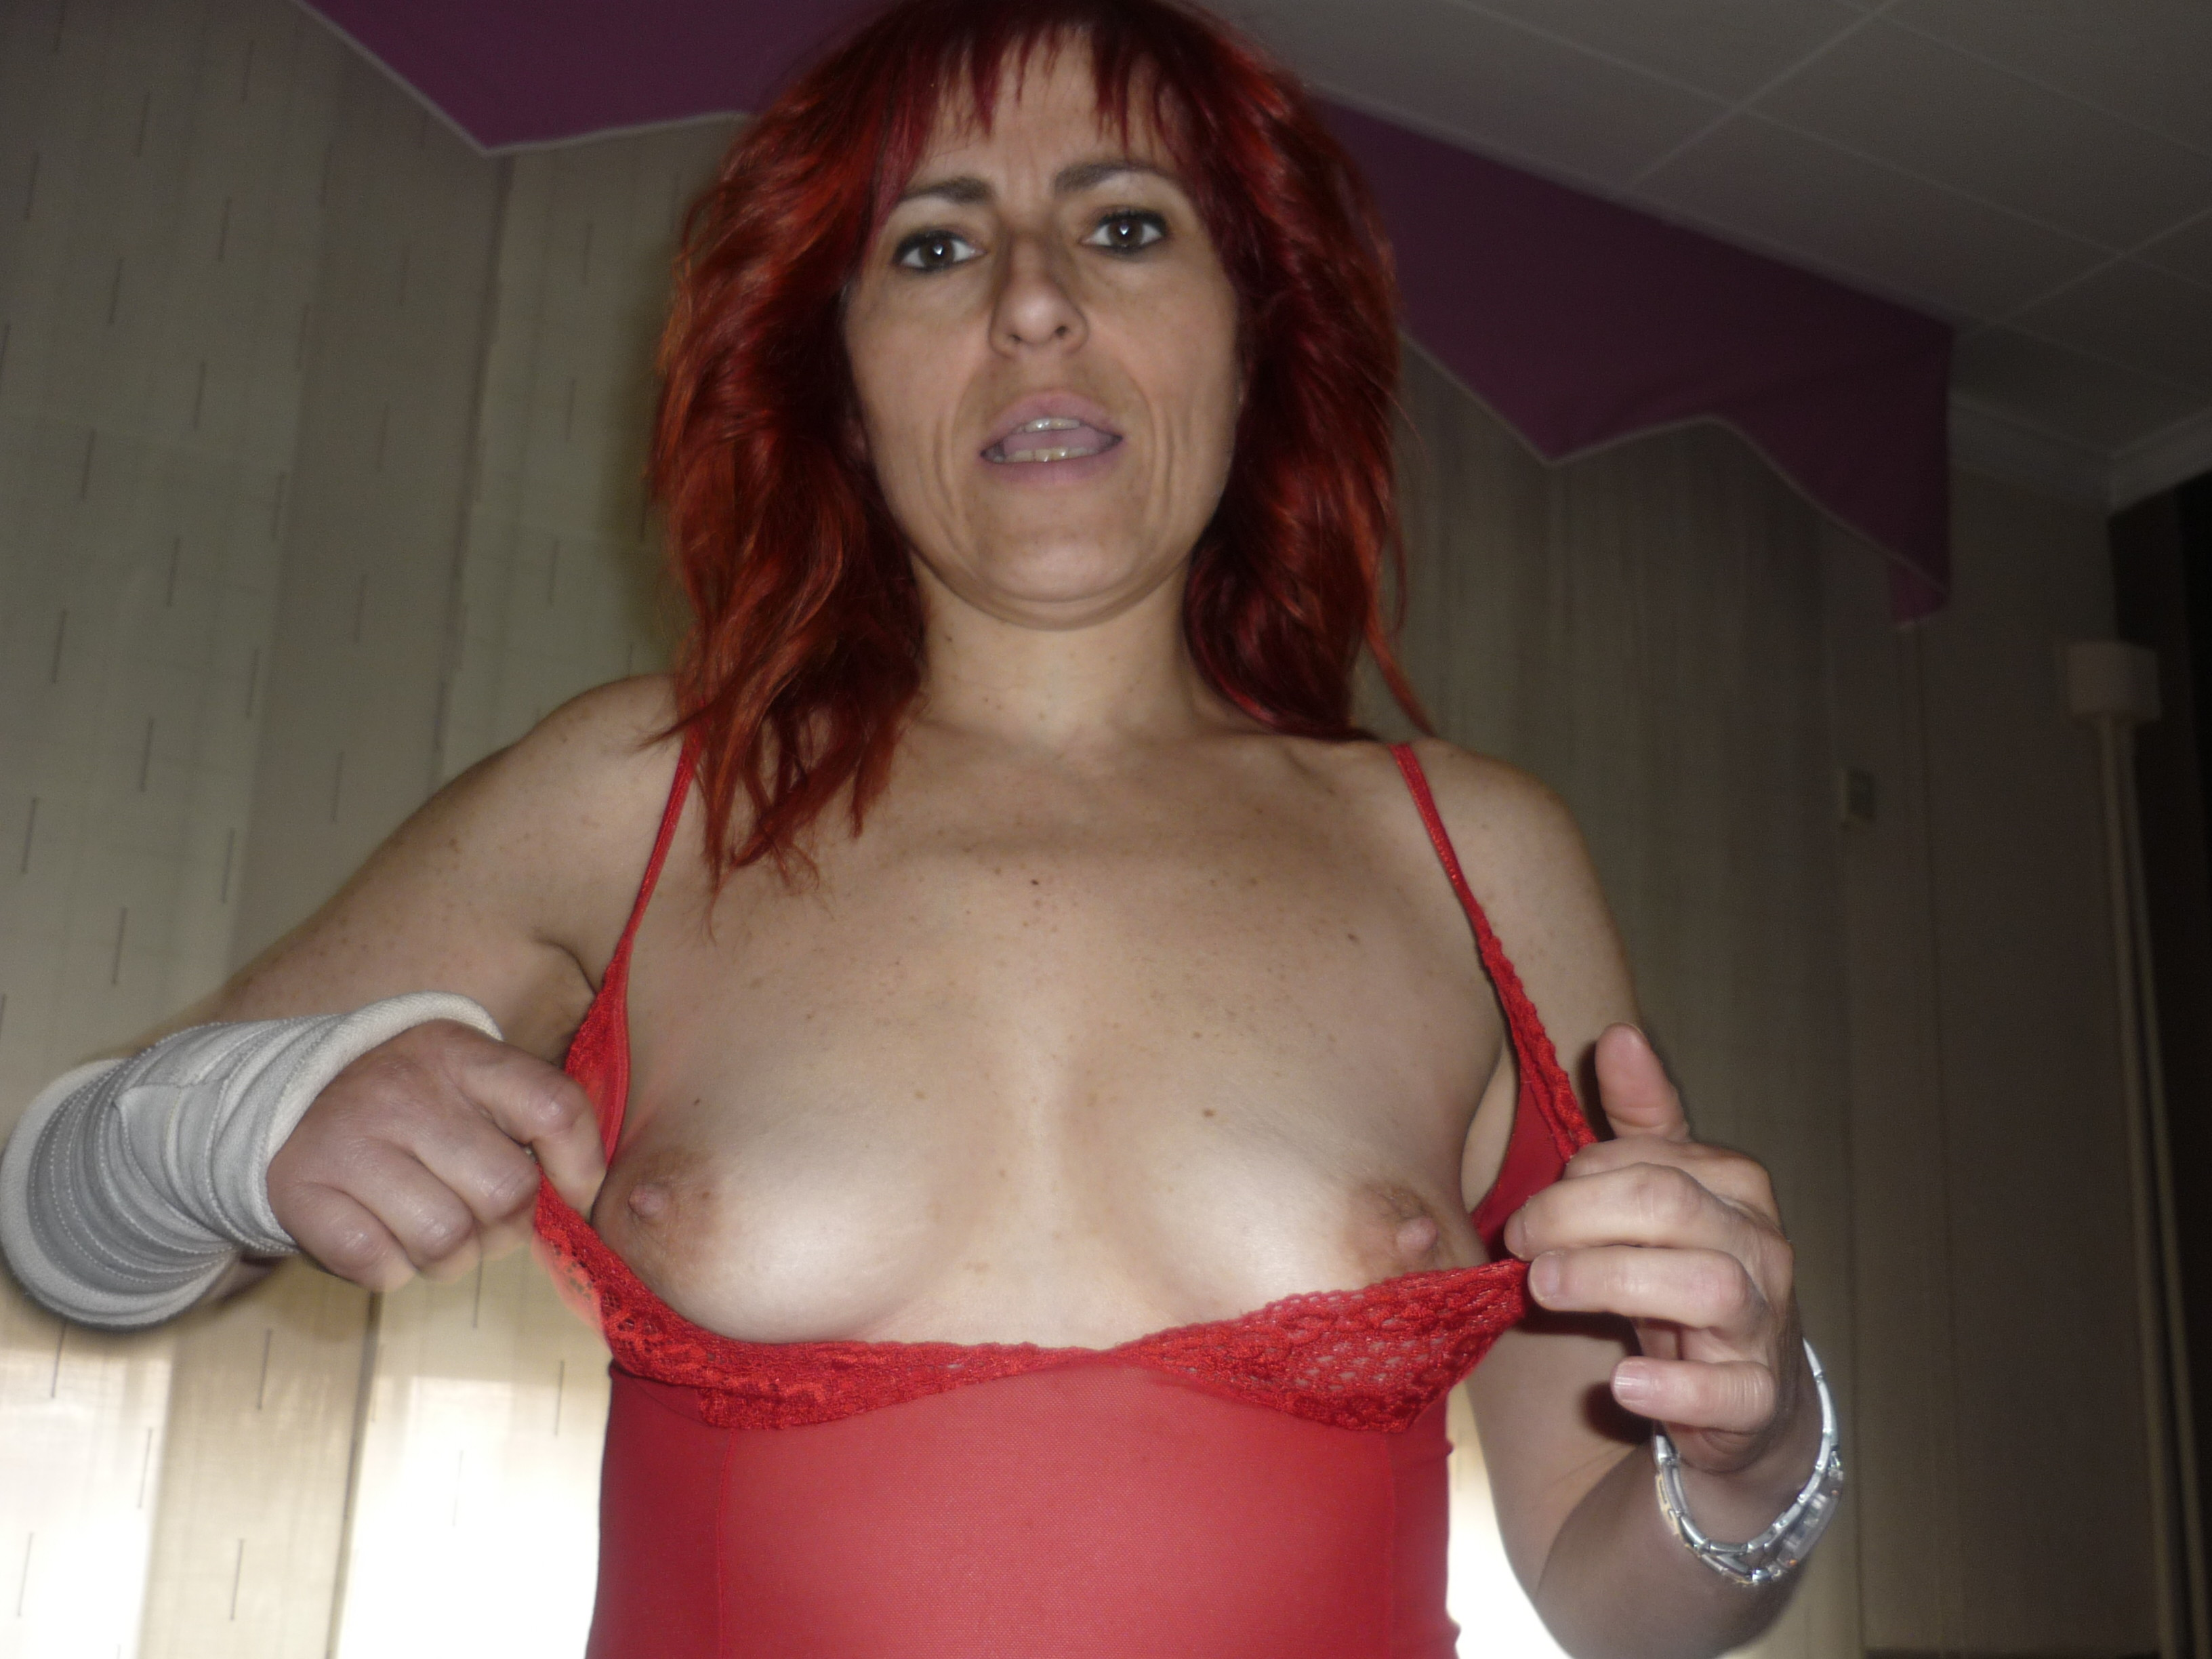 Aloha Porn Tube French french mature porn tube french milf hairy pussy videos